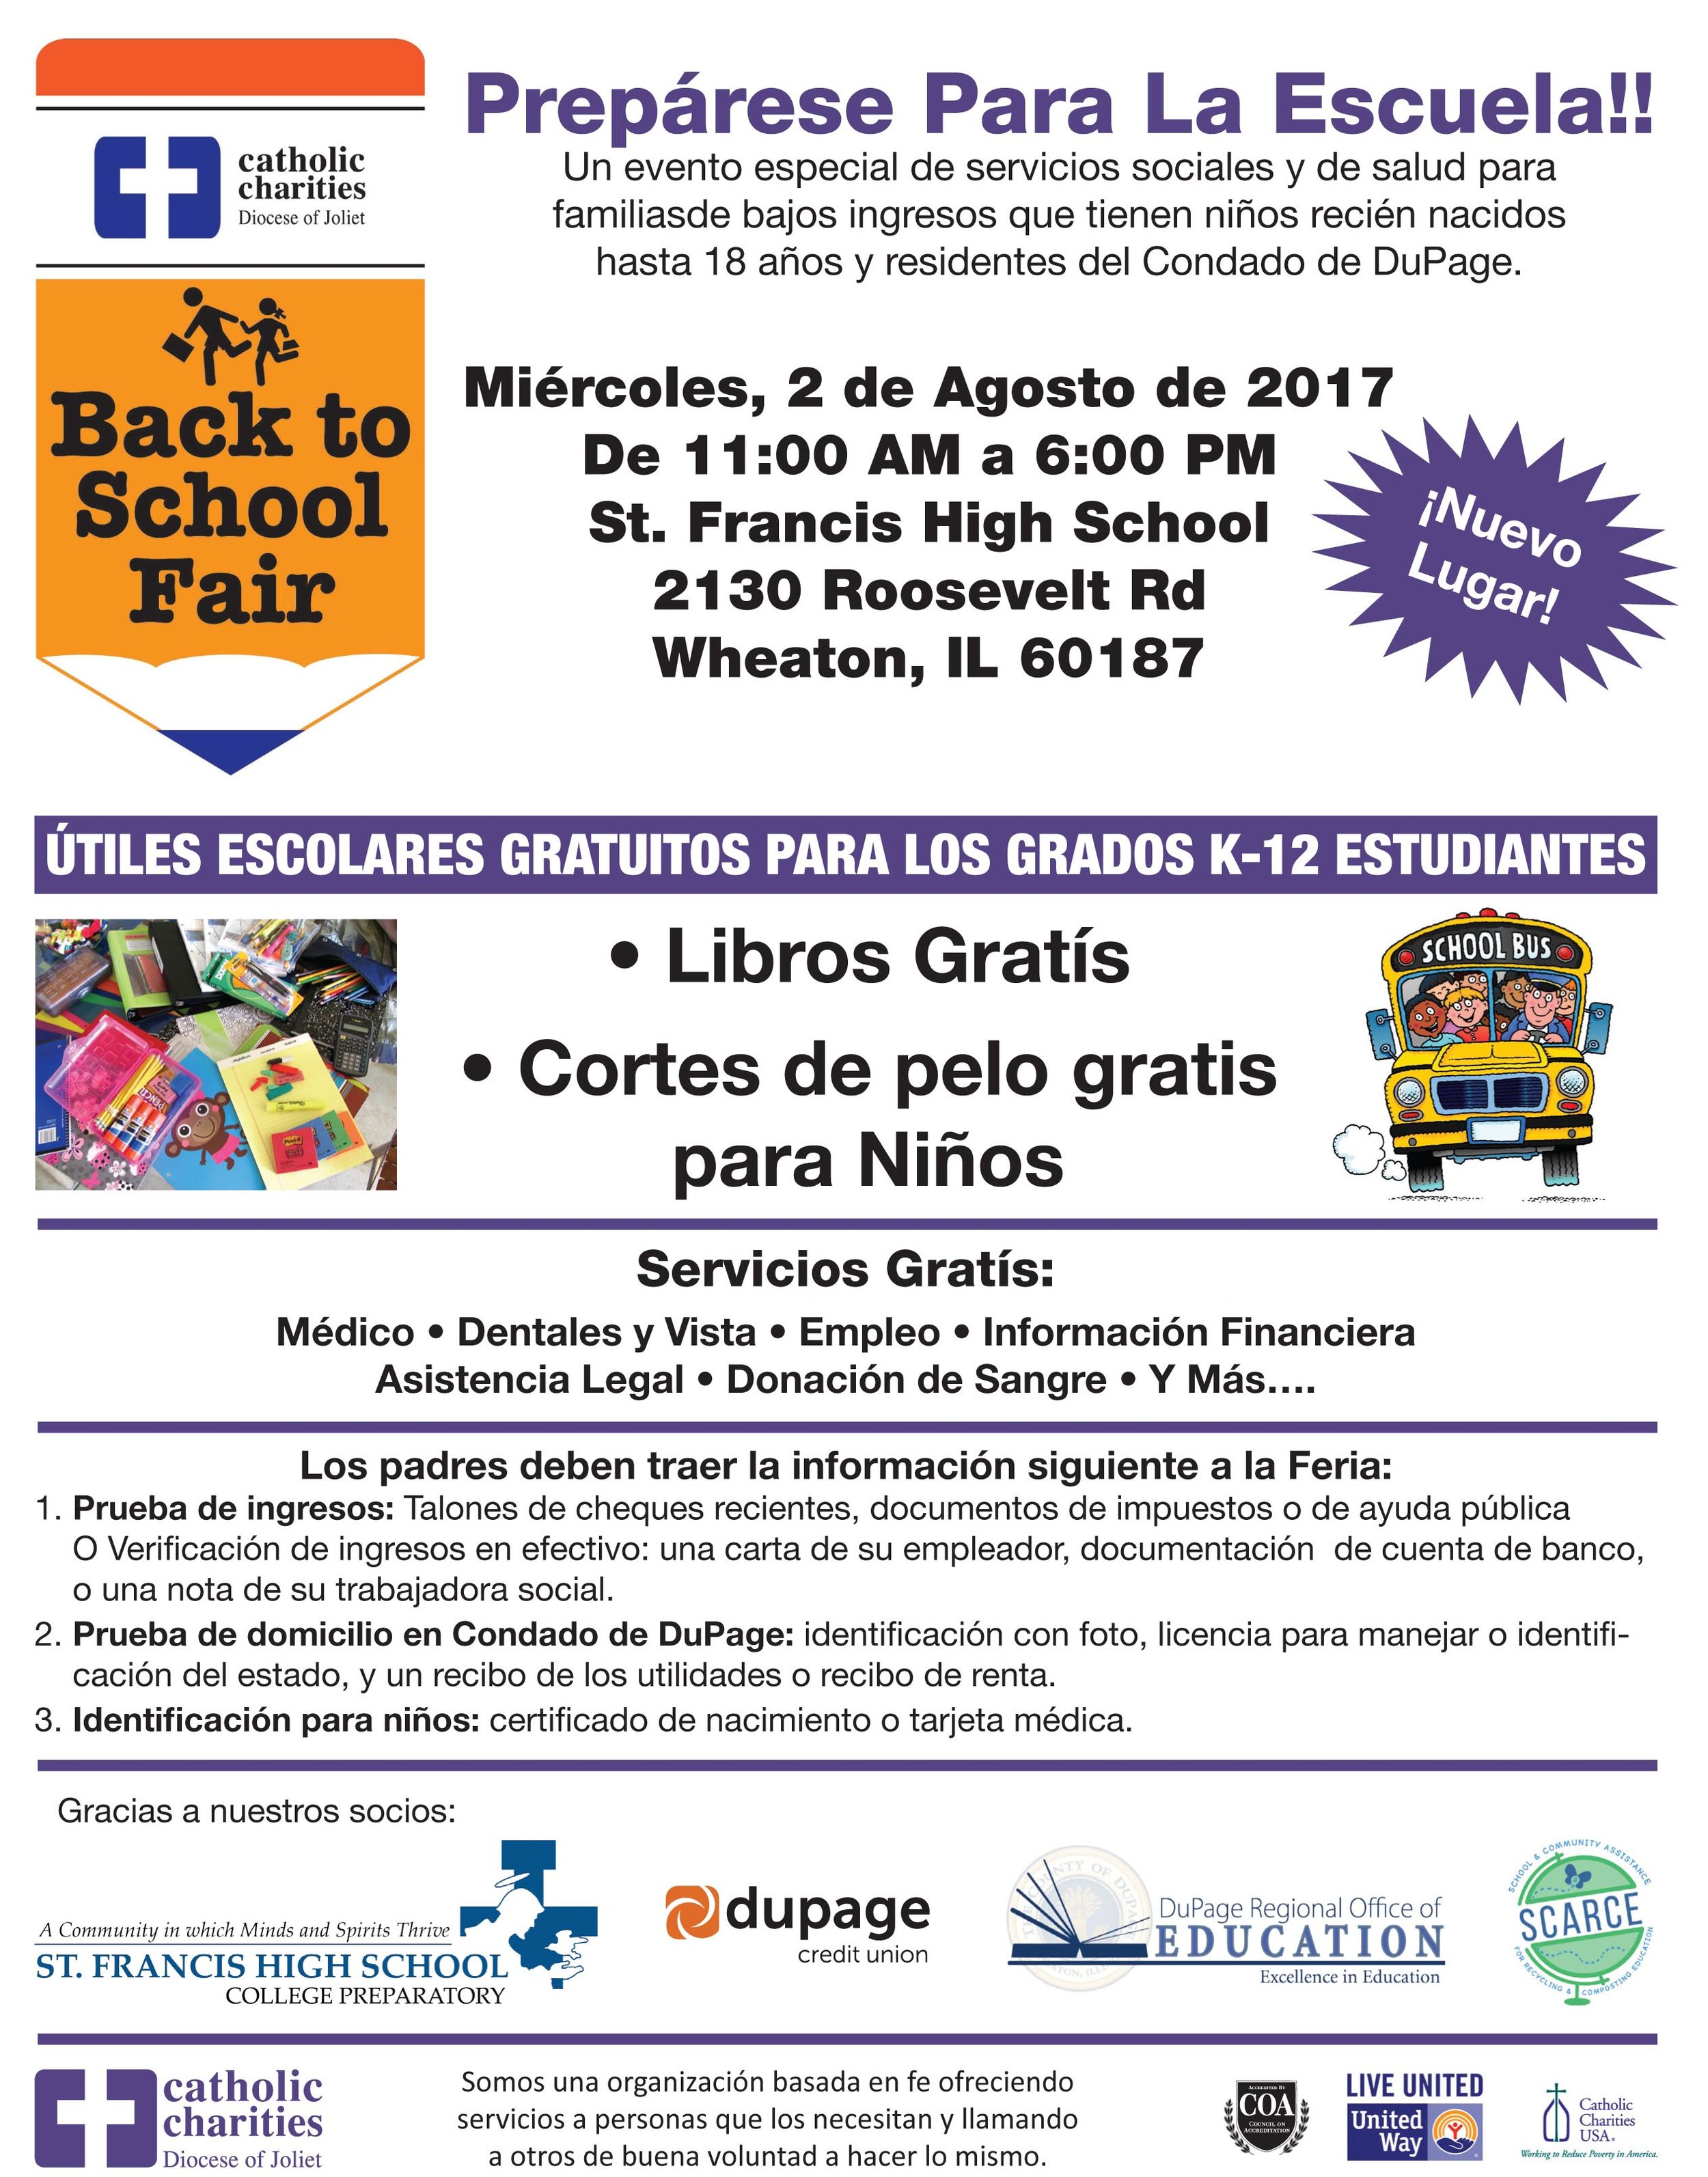 27th Annual DuPage County Back to School Fair Flyers in Spanish-2.jpg